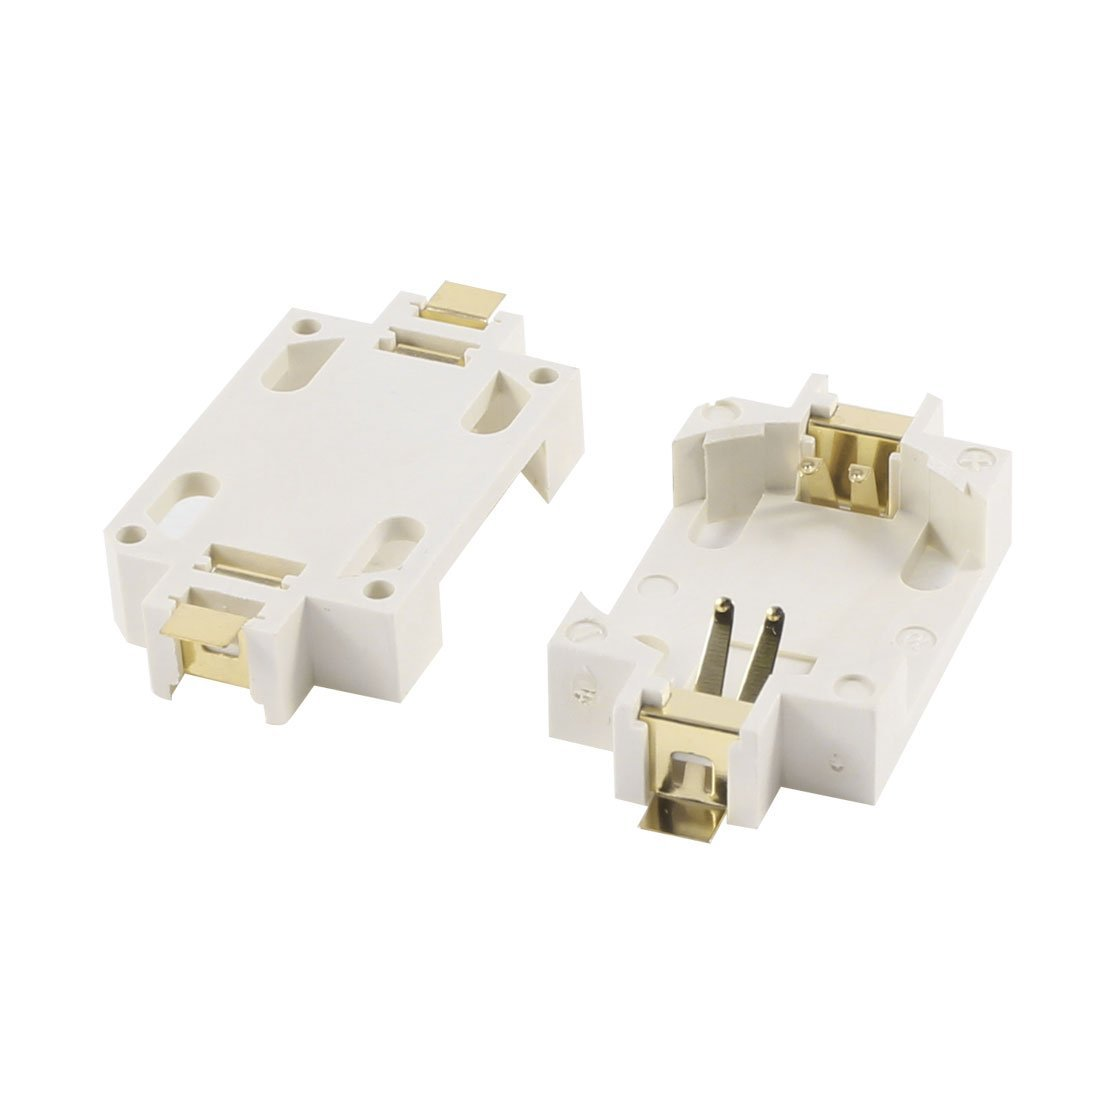 2PCS Plastic Shell CR2032 <font><b>Button</b></font> <font><b>Cell</b></font> <font><b>Battery</b></font> Socket <font><b>Holder</b></font> Case White